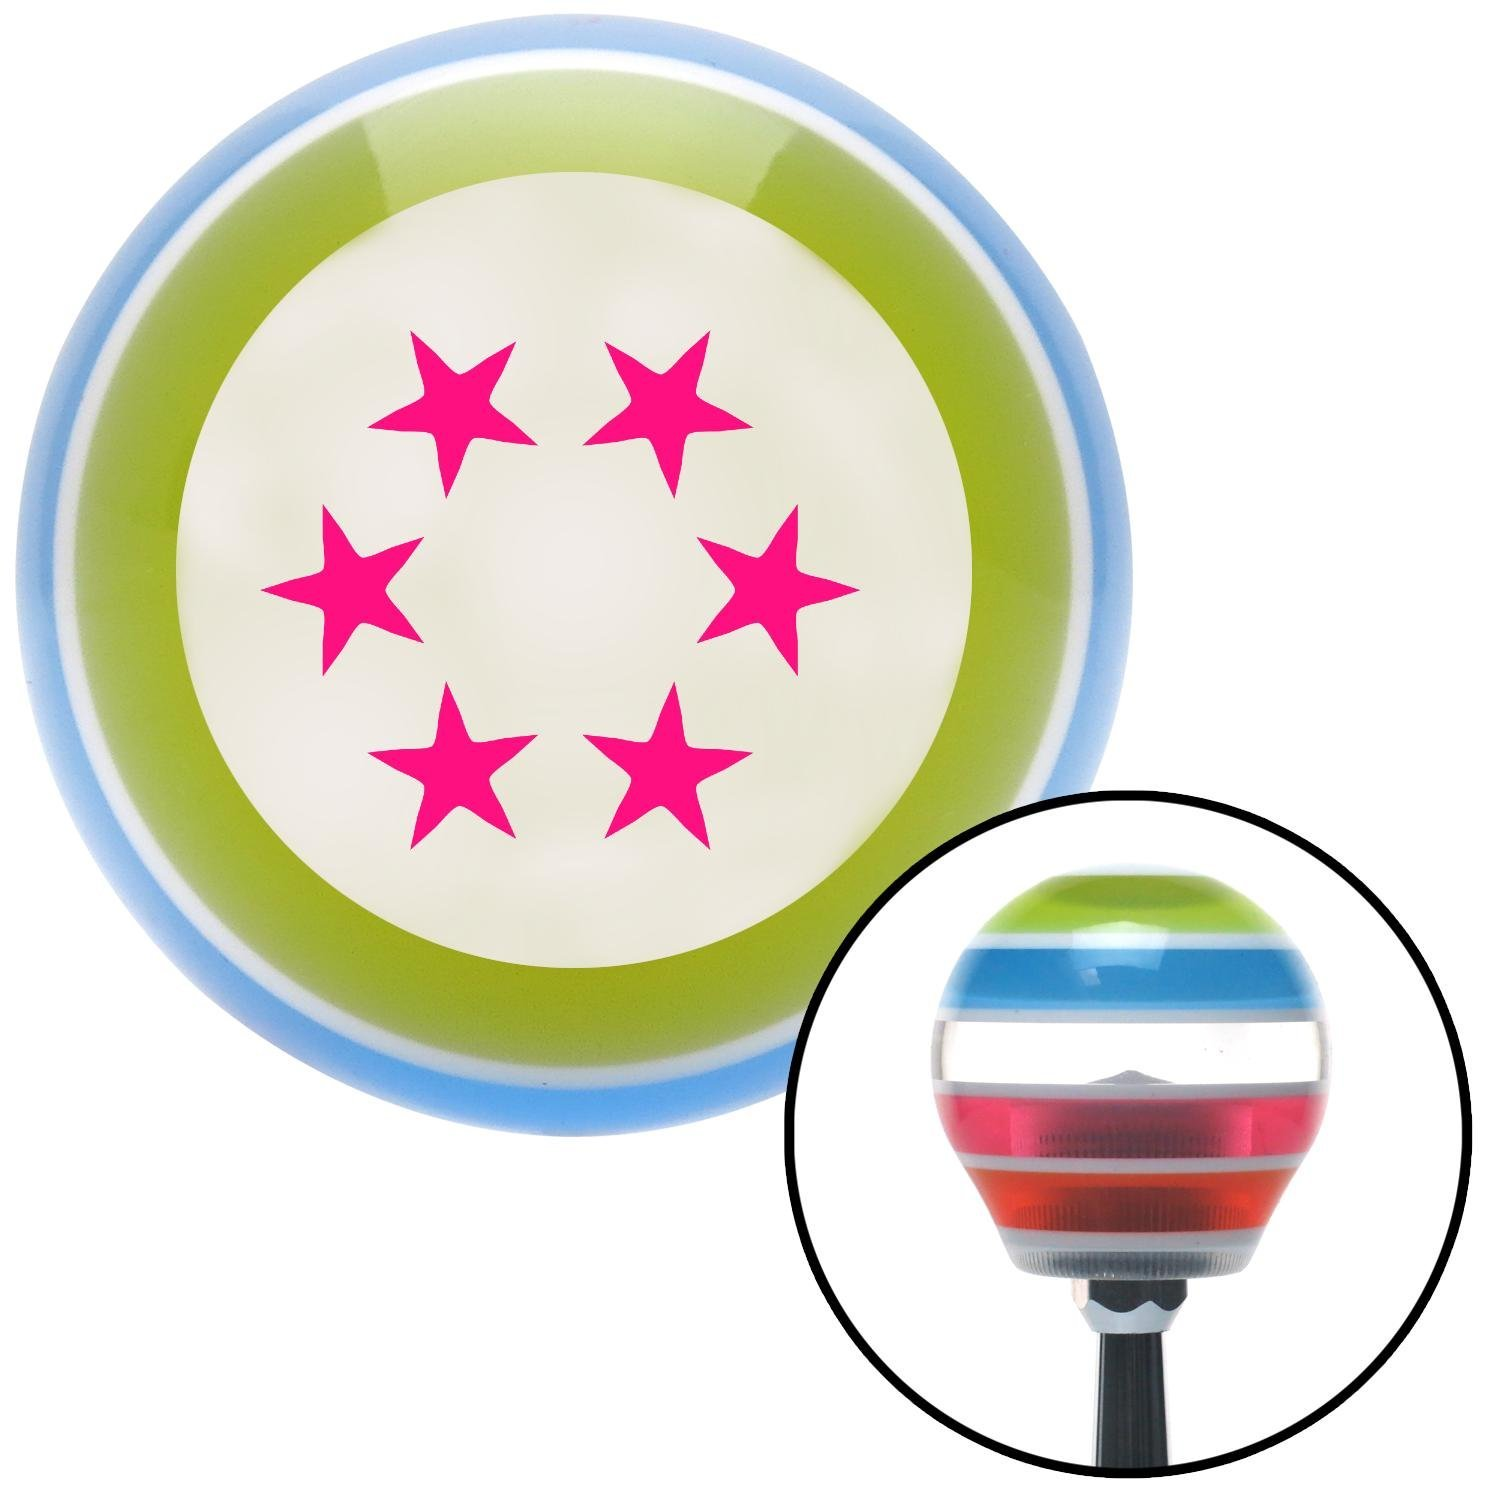 American Shifter 136965 Stripe Shift Knob with M16 x 1.5 Insert Pink 5 Stars in Circle